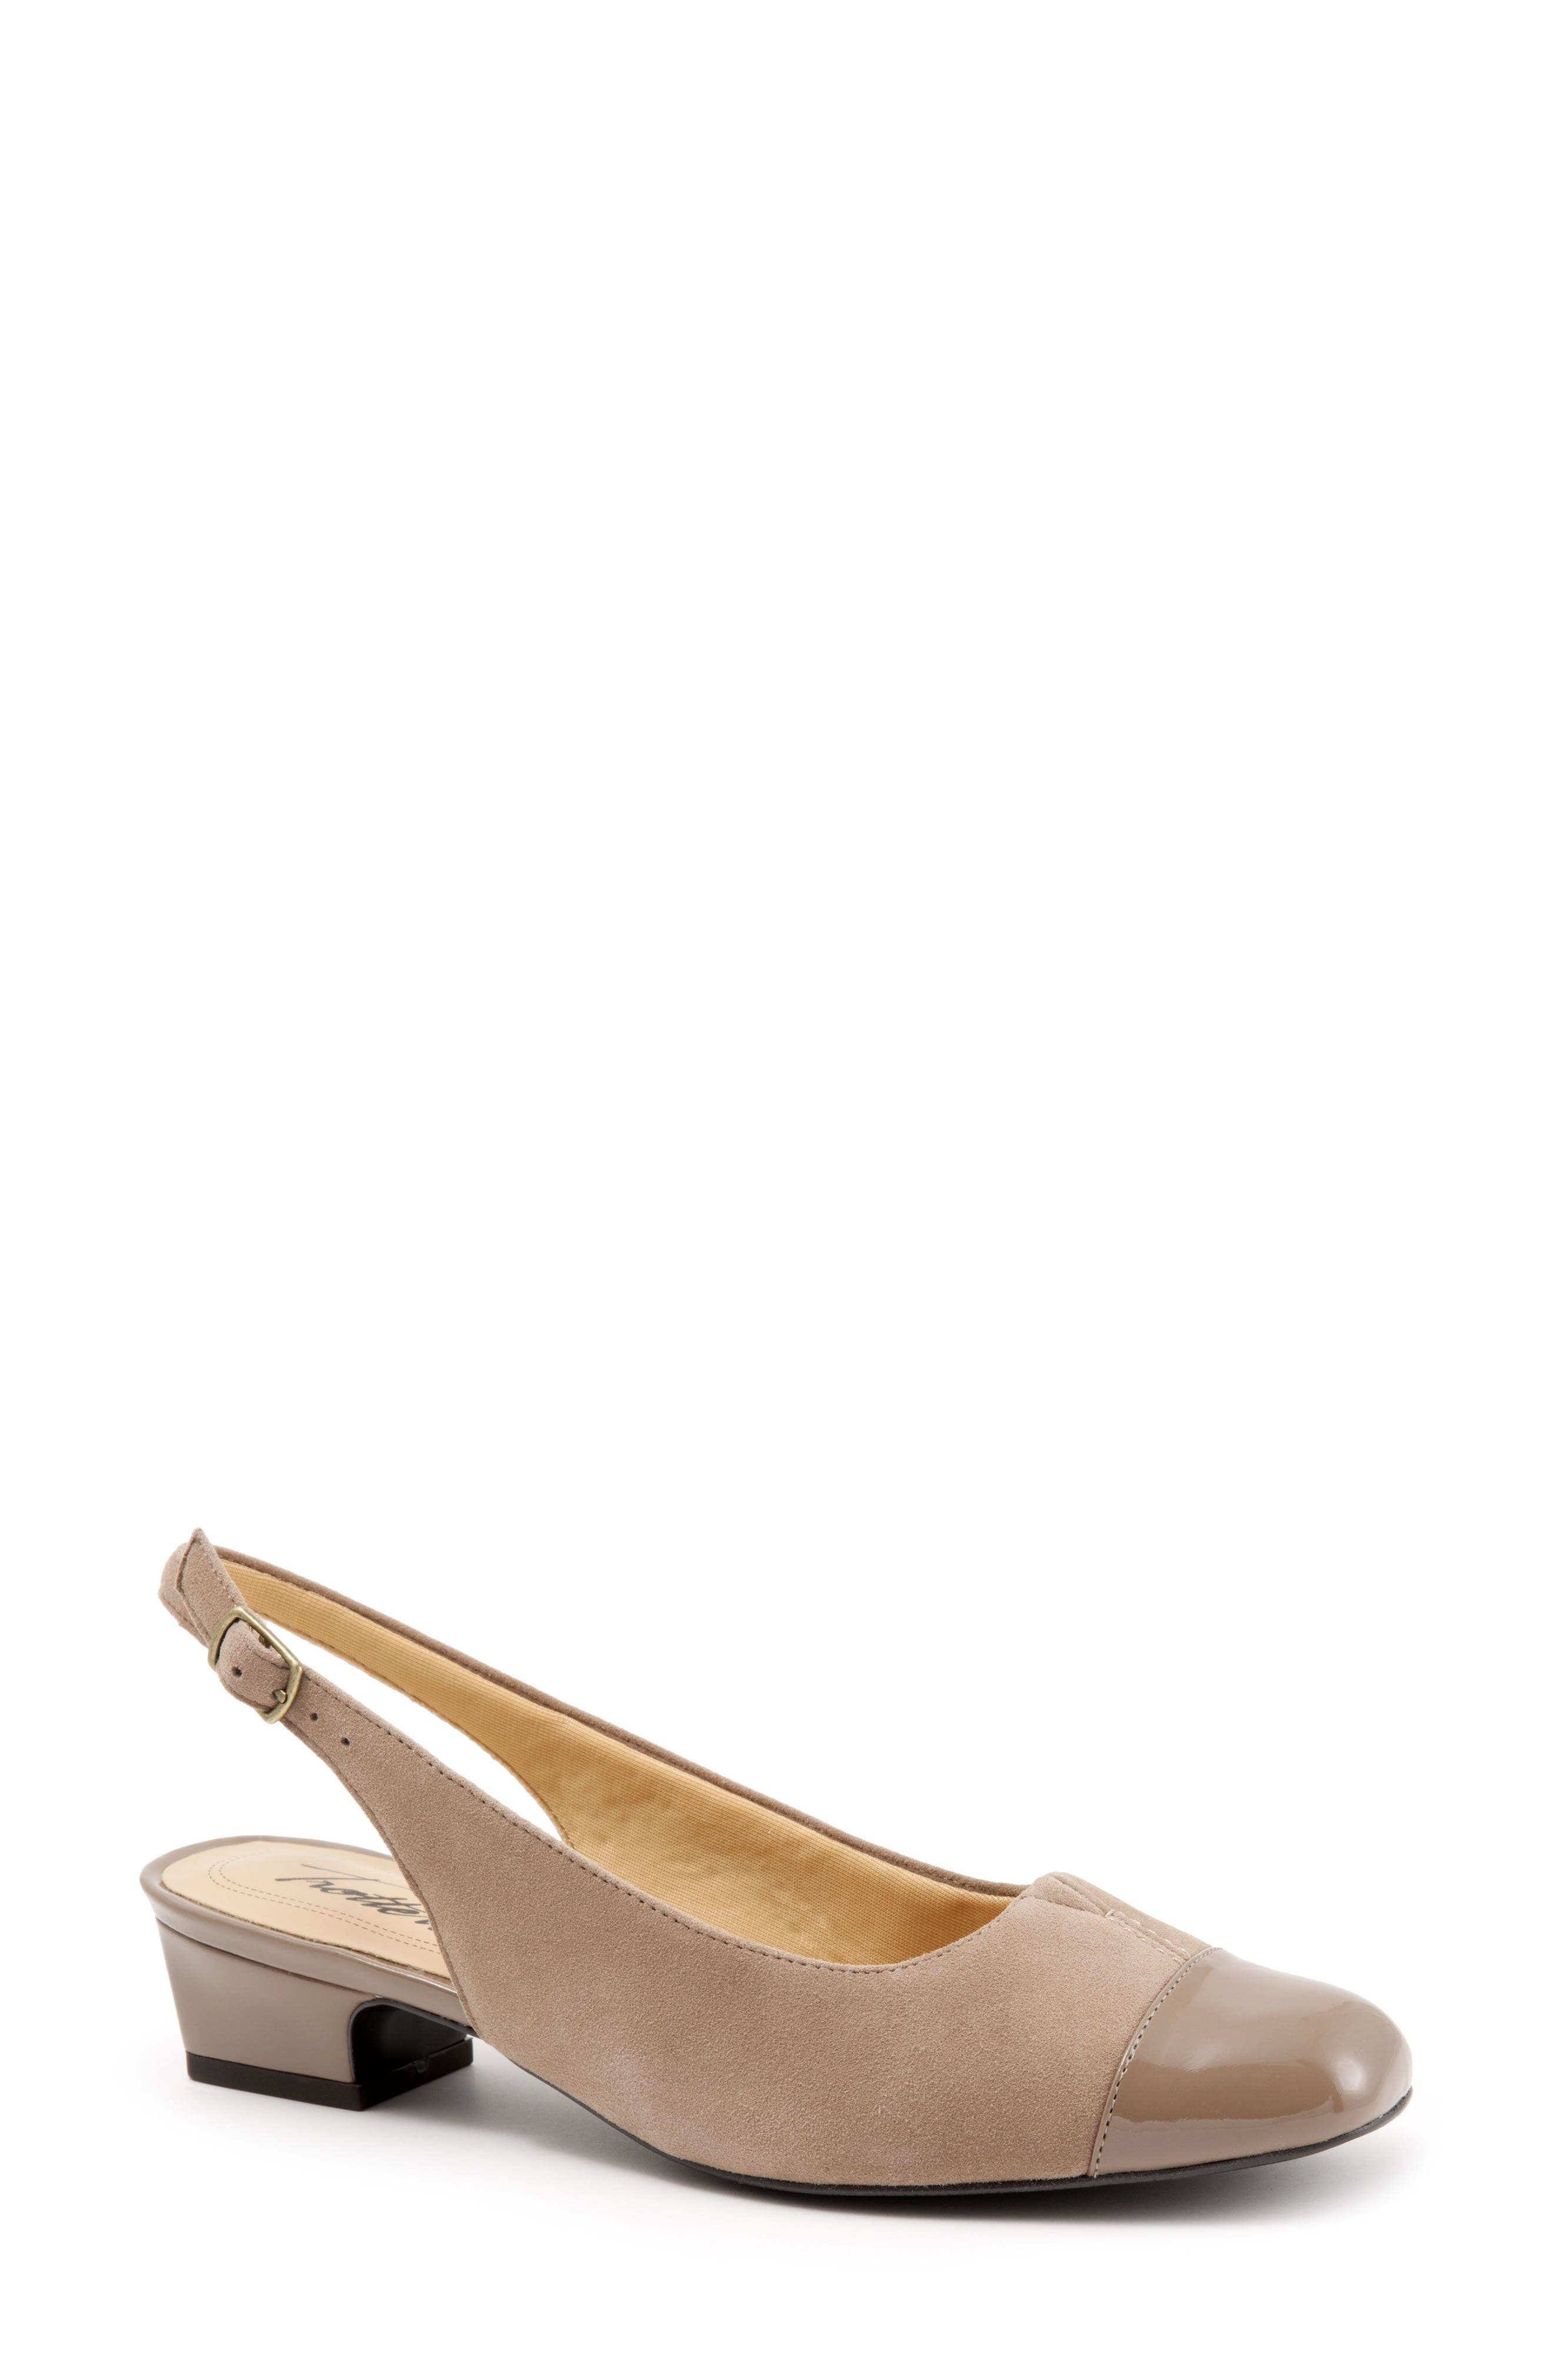 Alternate Image 1 Selected - Trotters 'Dea' Slingback